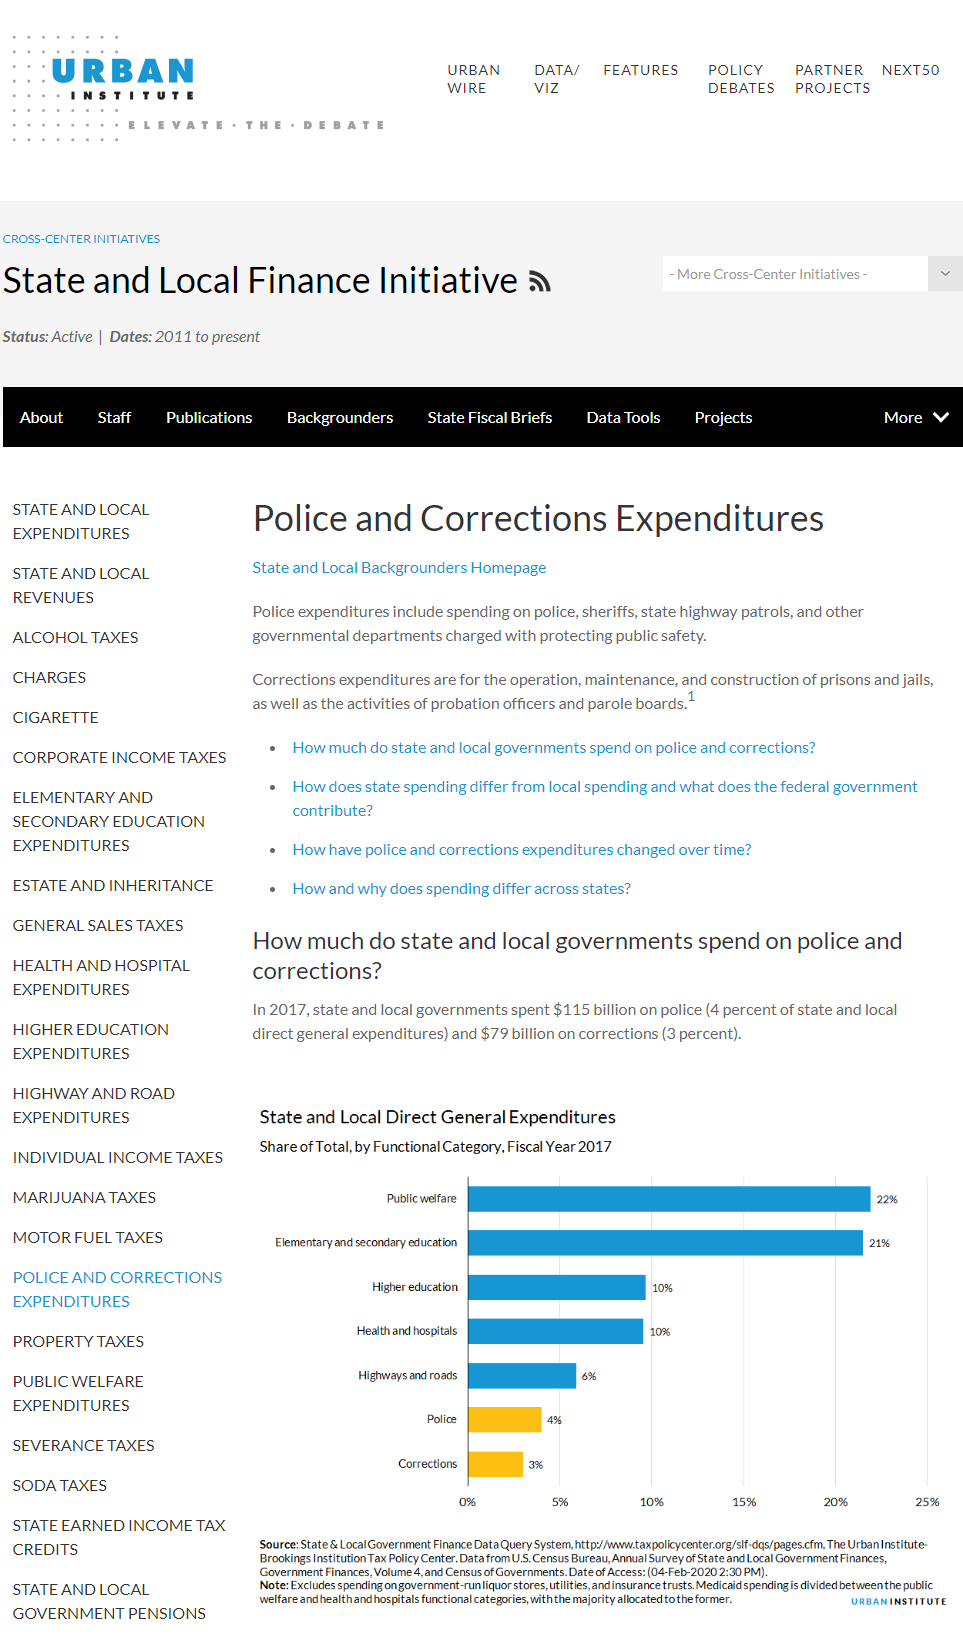 Police and Corrections Expenditures